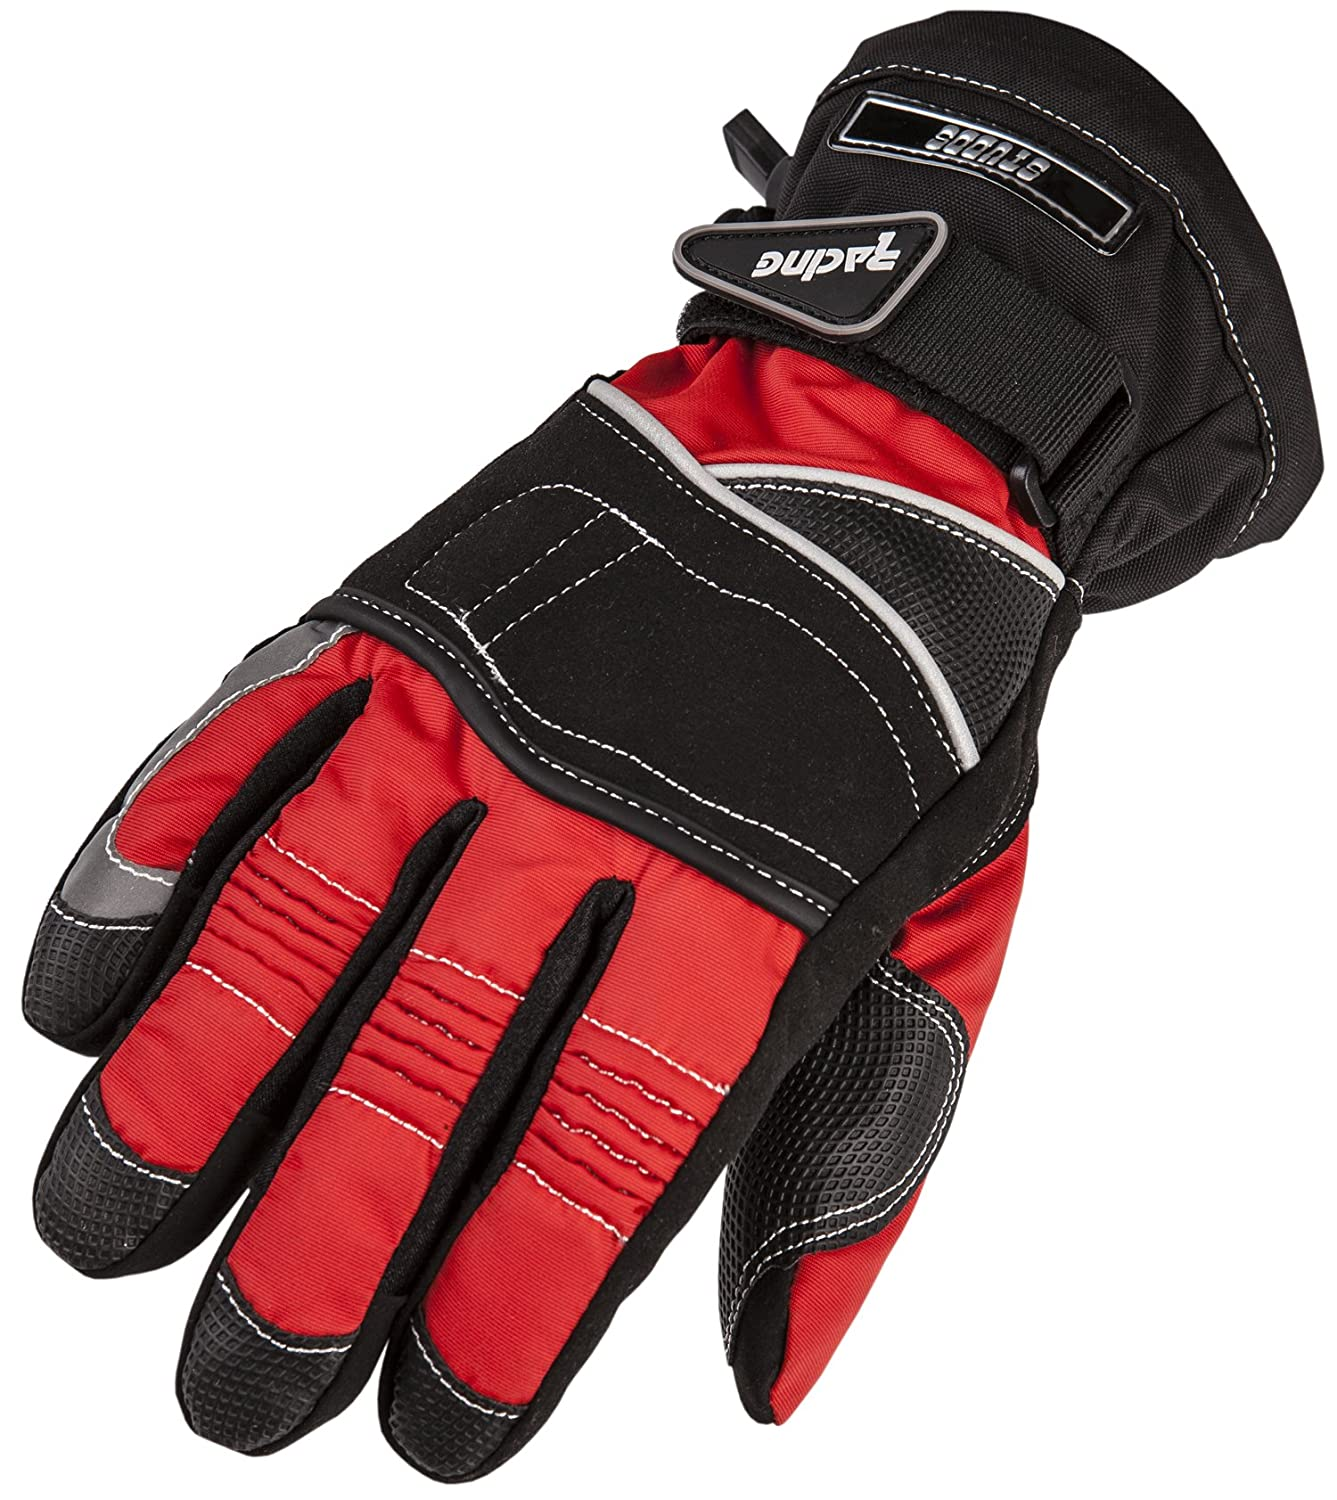 Driving gloves online shopping india - Studds Smg 4 Motorcycle Riding Gears Driving Gloves Red Xl